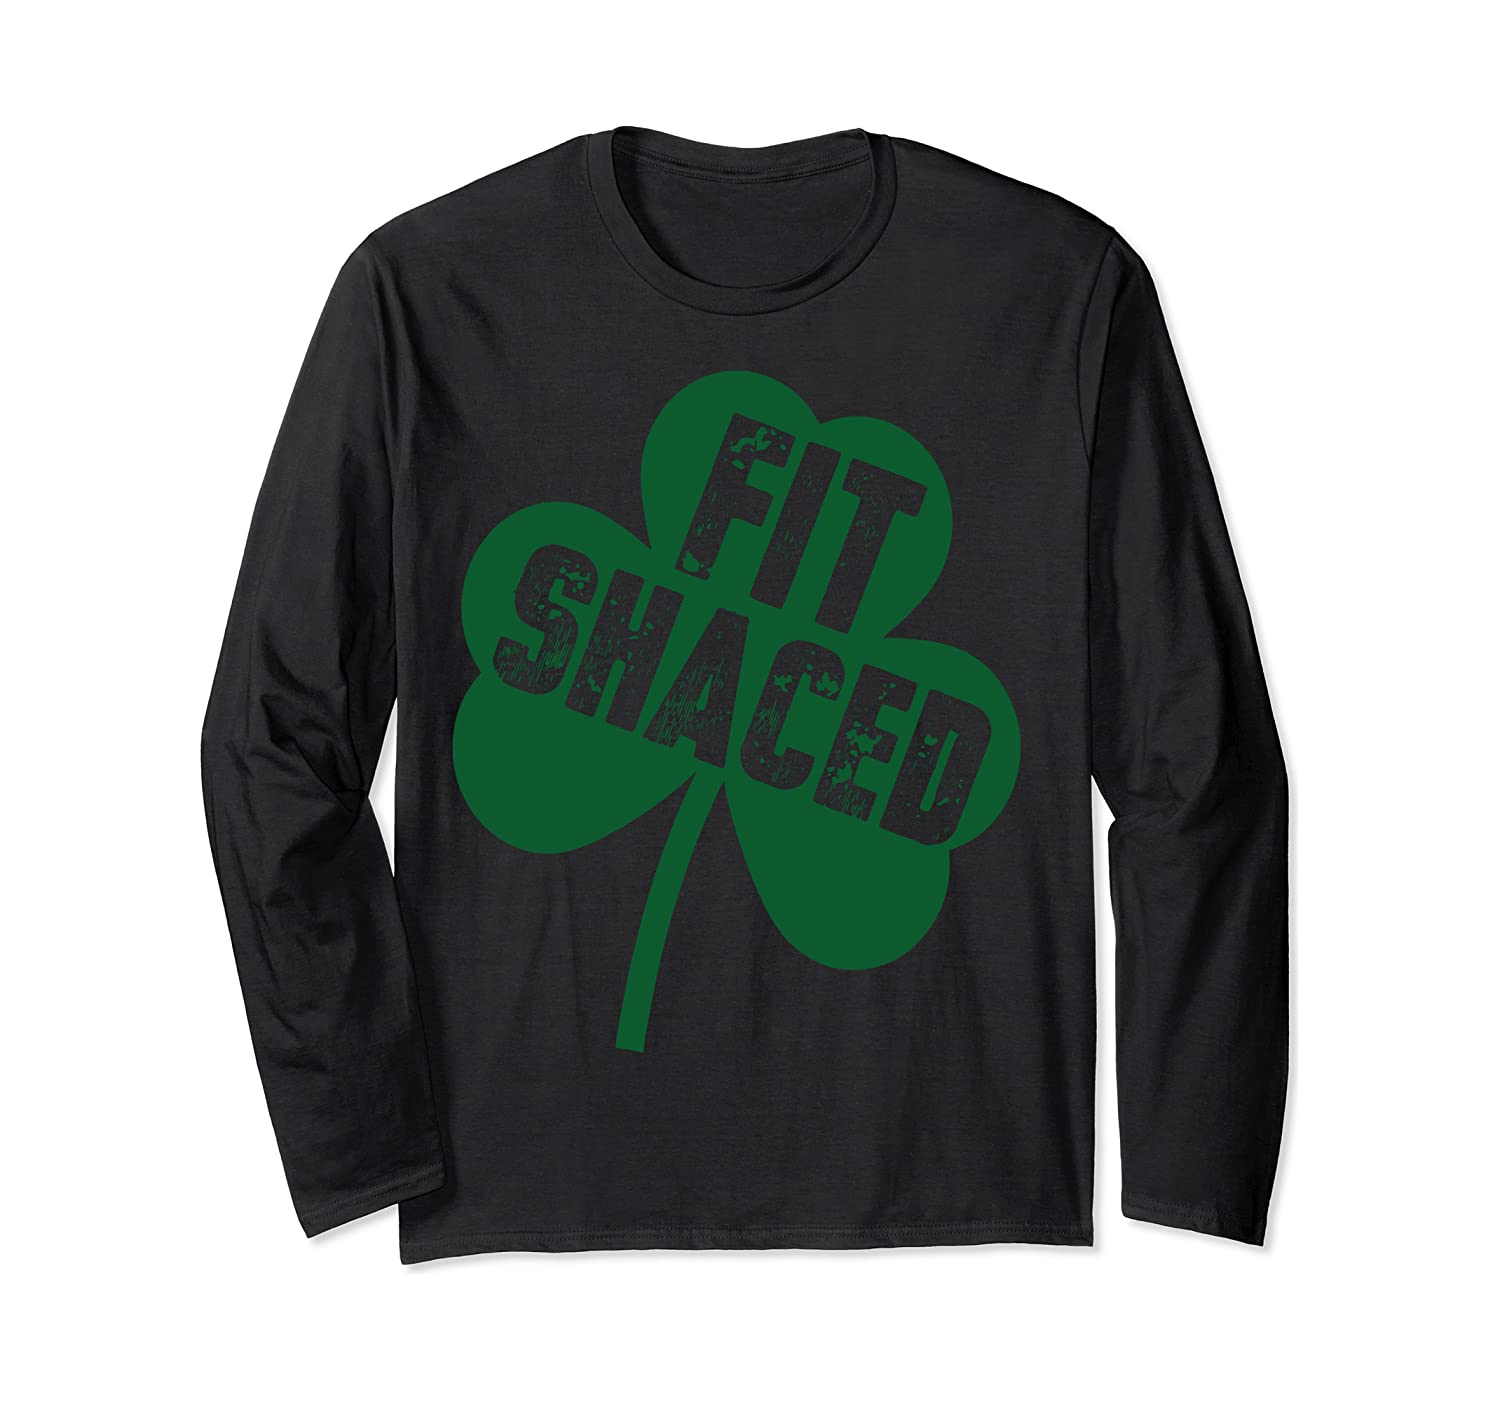 Fit Shaced Long Sleeve Tee St Patricks Day Shamrock Gift Long Sleeve T-shirt